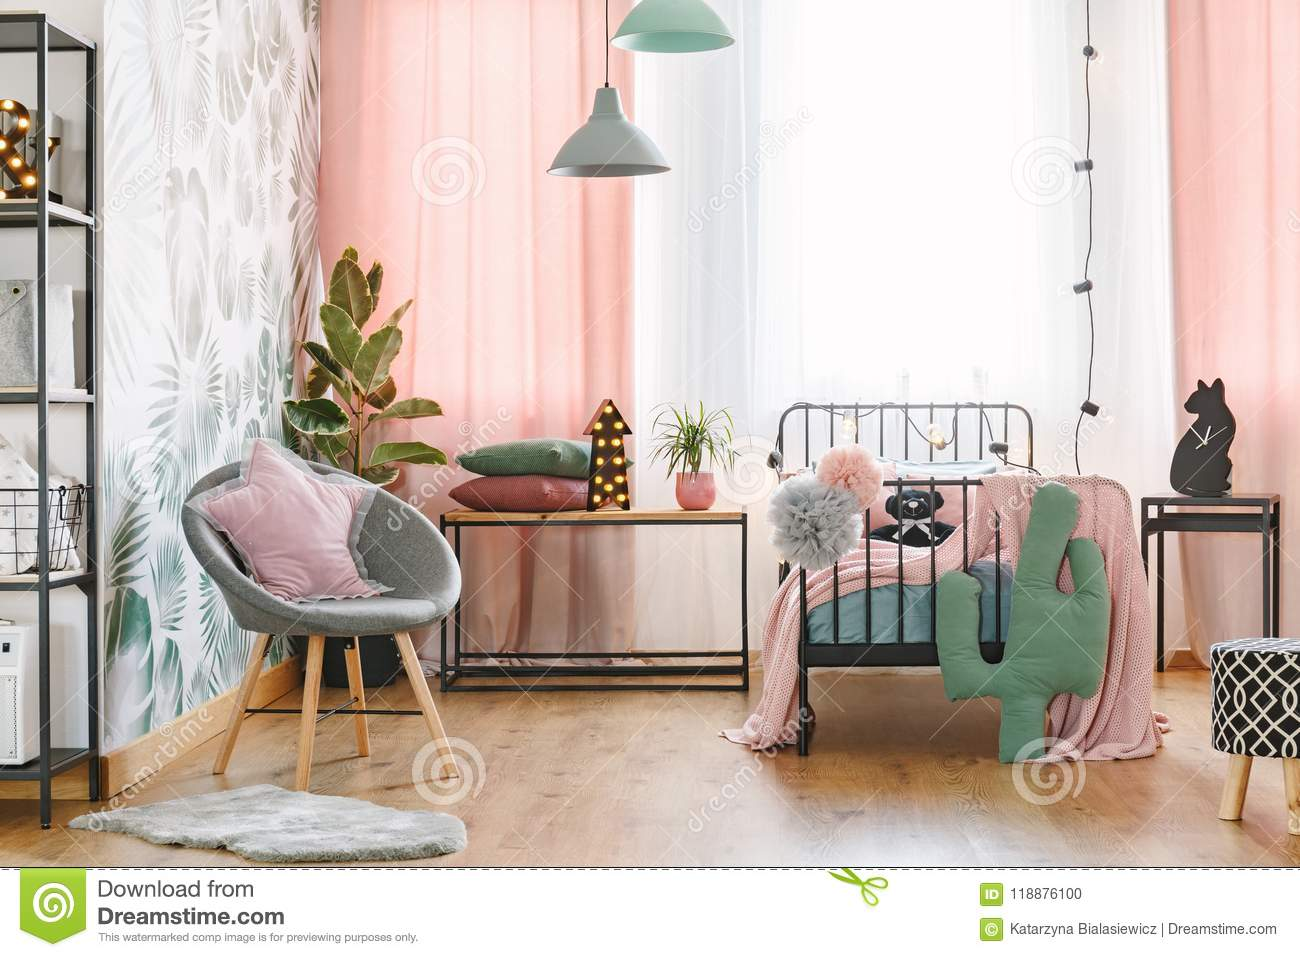 Pink And Grey Bedroom Interior Stock Photo Image Of Bedsheets Cushion 118876100